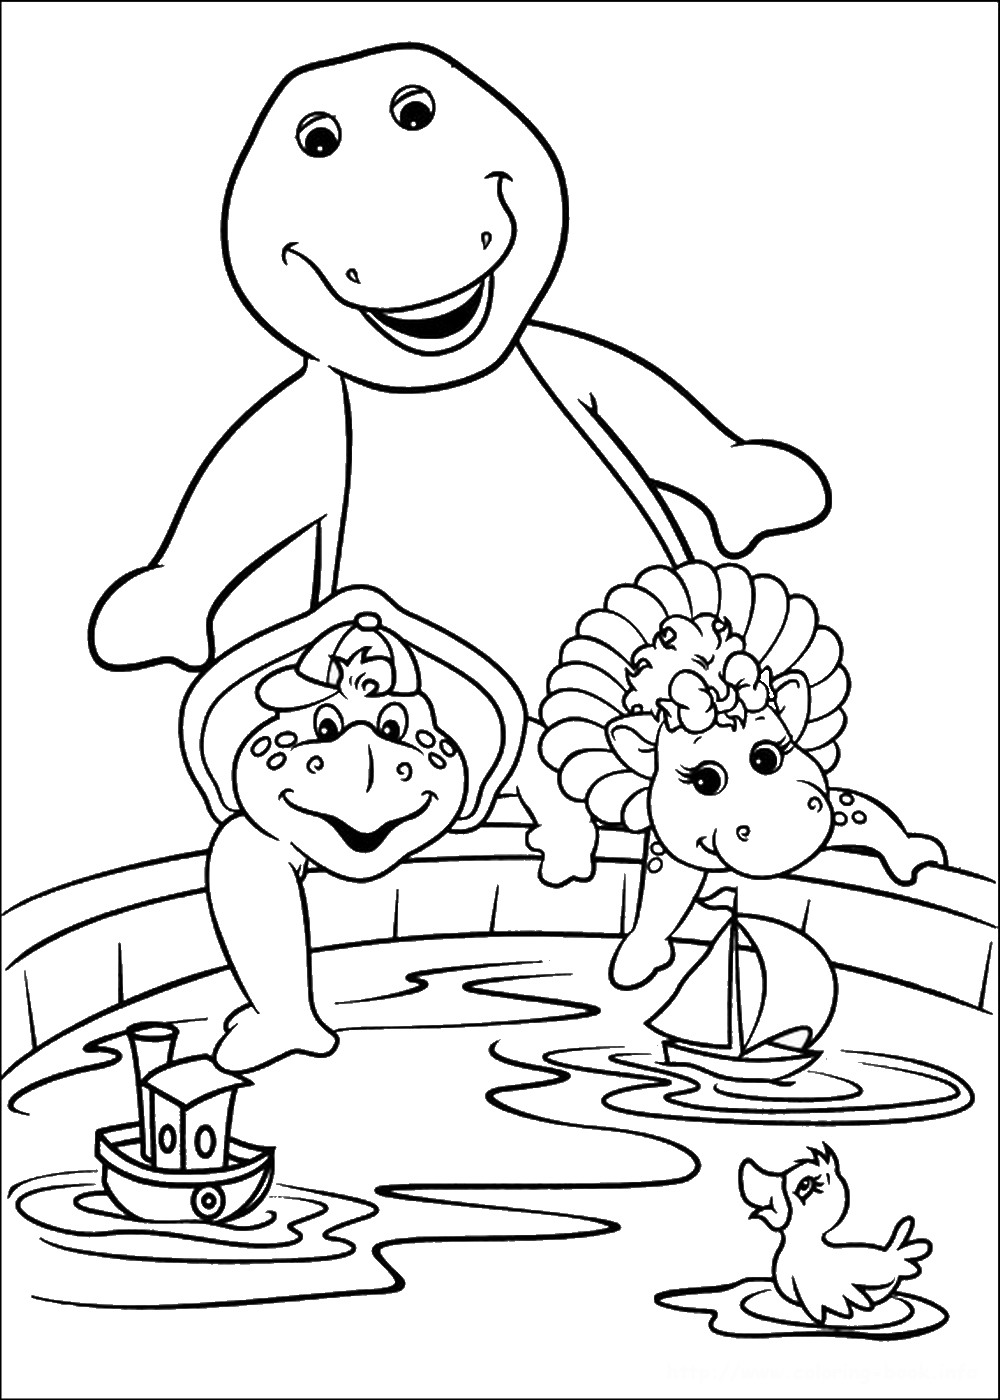 coloring pages to print and color zootropolis coloring pages to and print pages coloring color